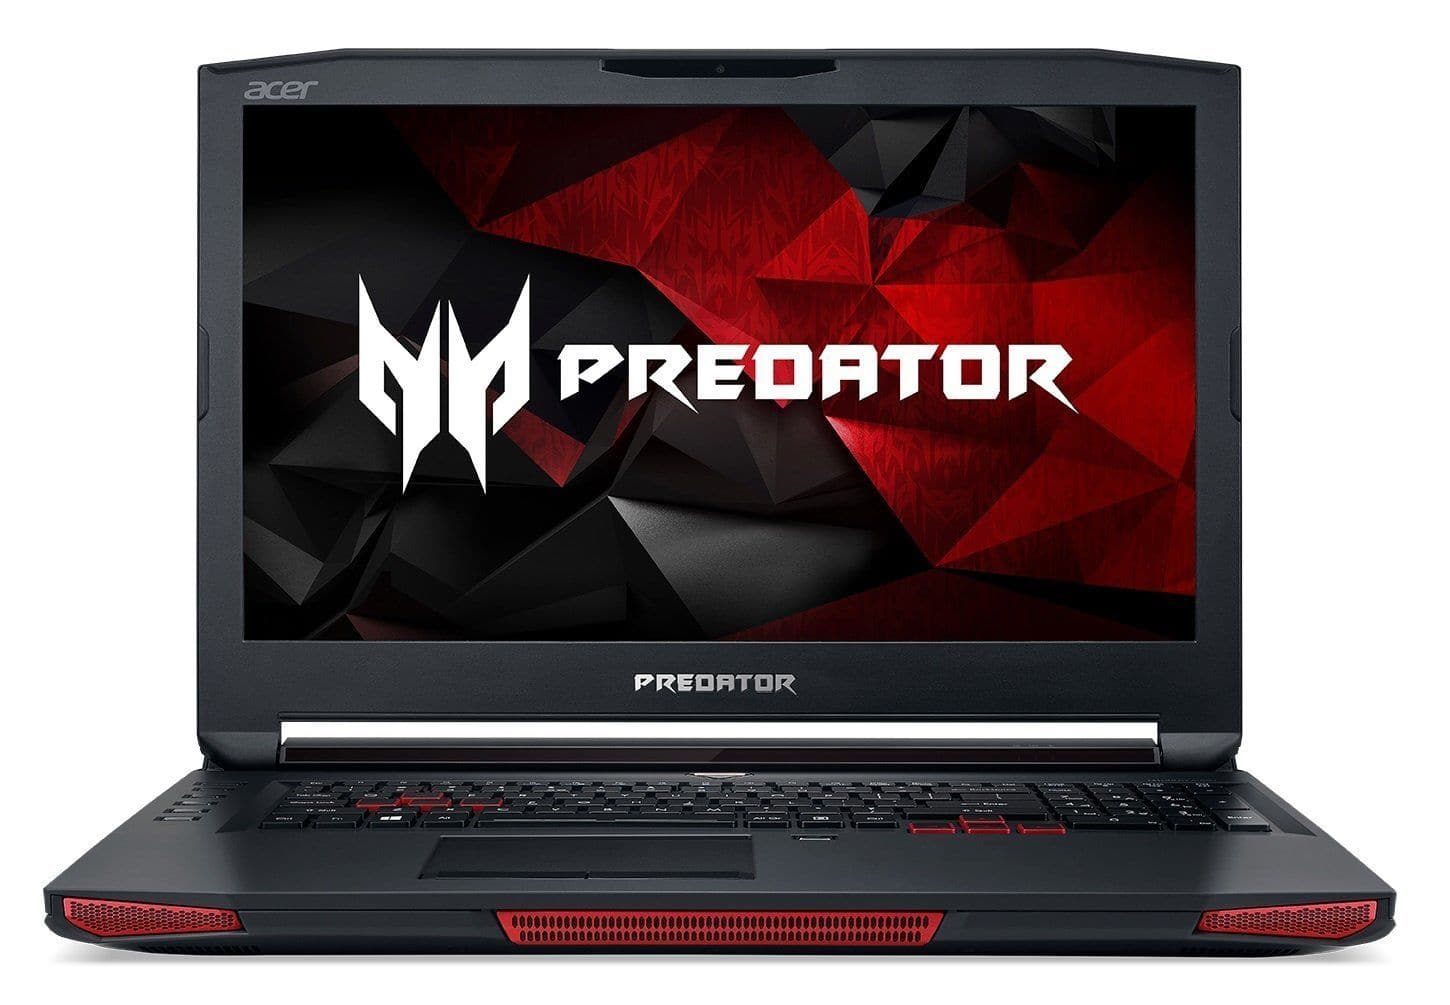 Acer Predator Gaming Laptop 17 X Manufacturer Refurbished $1589 NVIDIA GeForce GTX 1080 SSD G-SYNC VR Machine